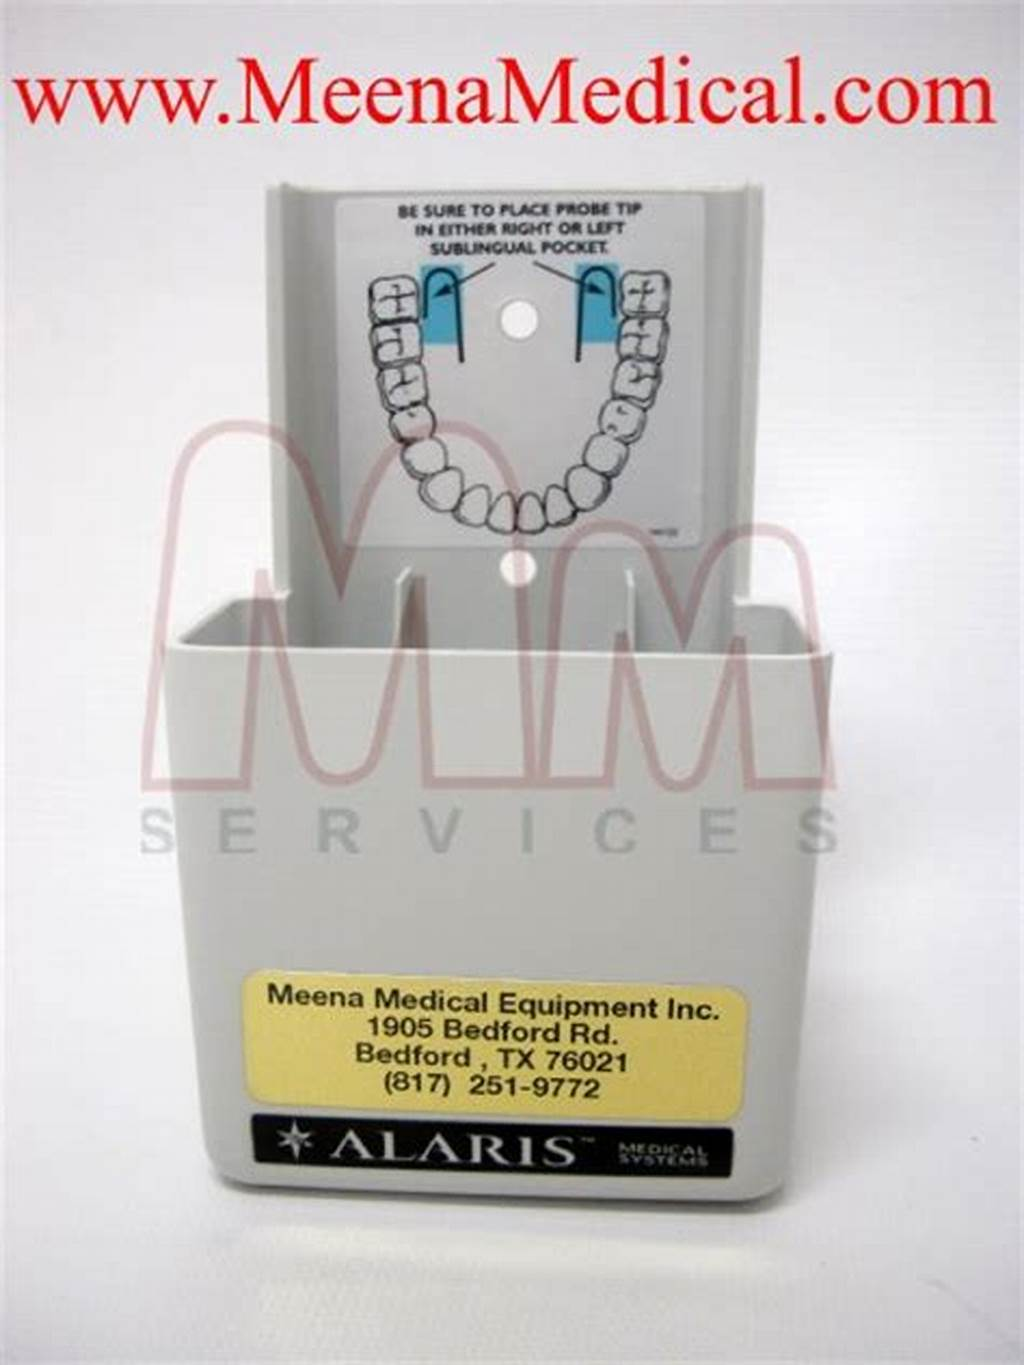 #Alaris #Ivac #Turbo #Temp #Electronic #Thermometer #2180Cx01Ee